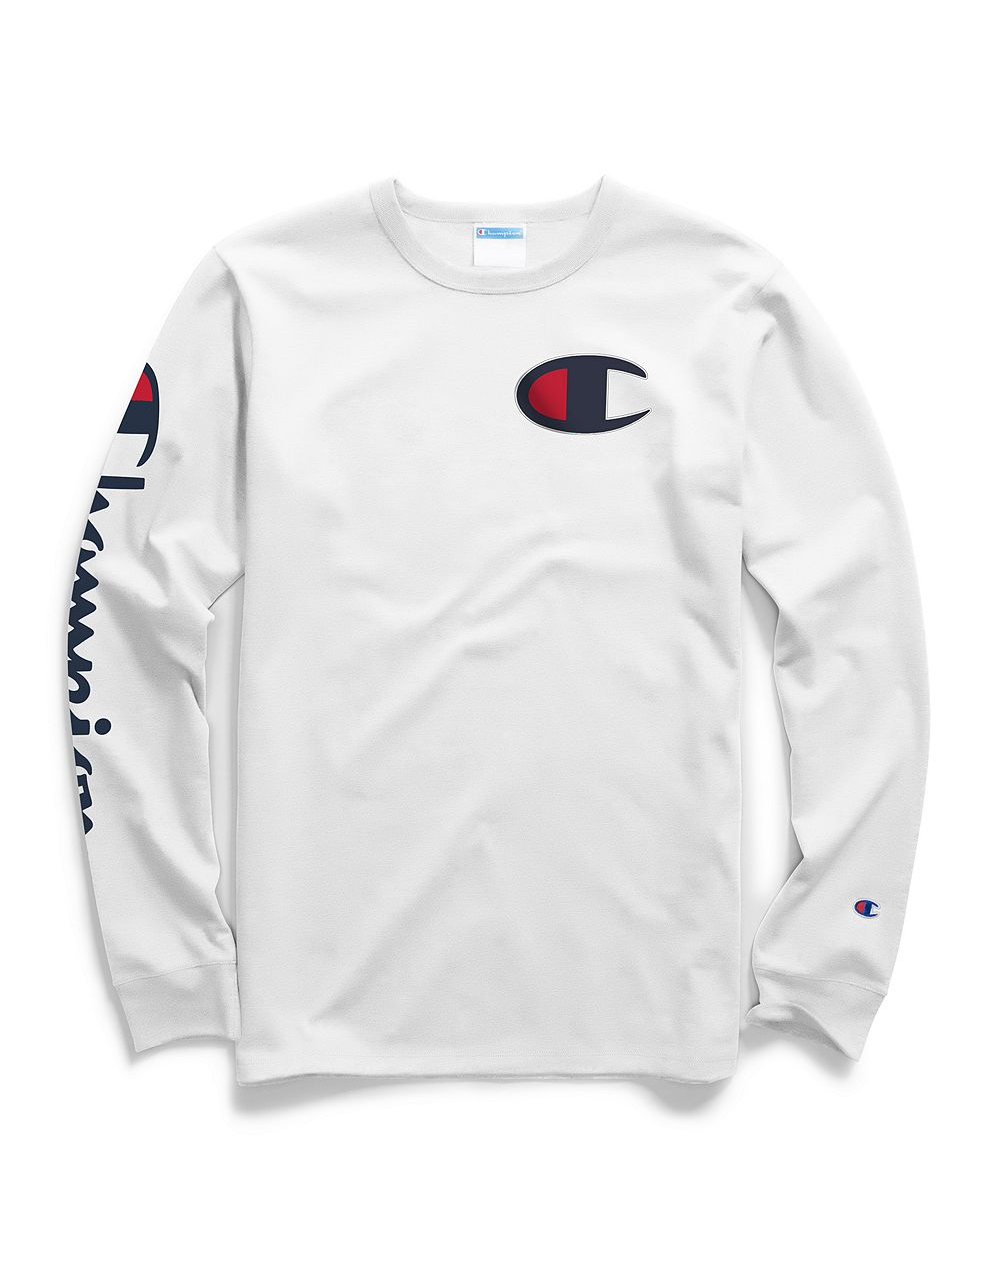 Champion Life® Men's Long-Sleeve Tee, Big C Logo White